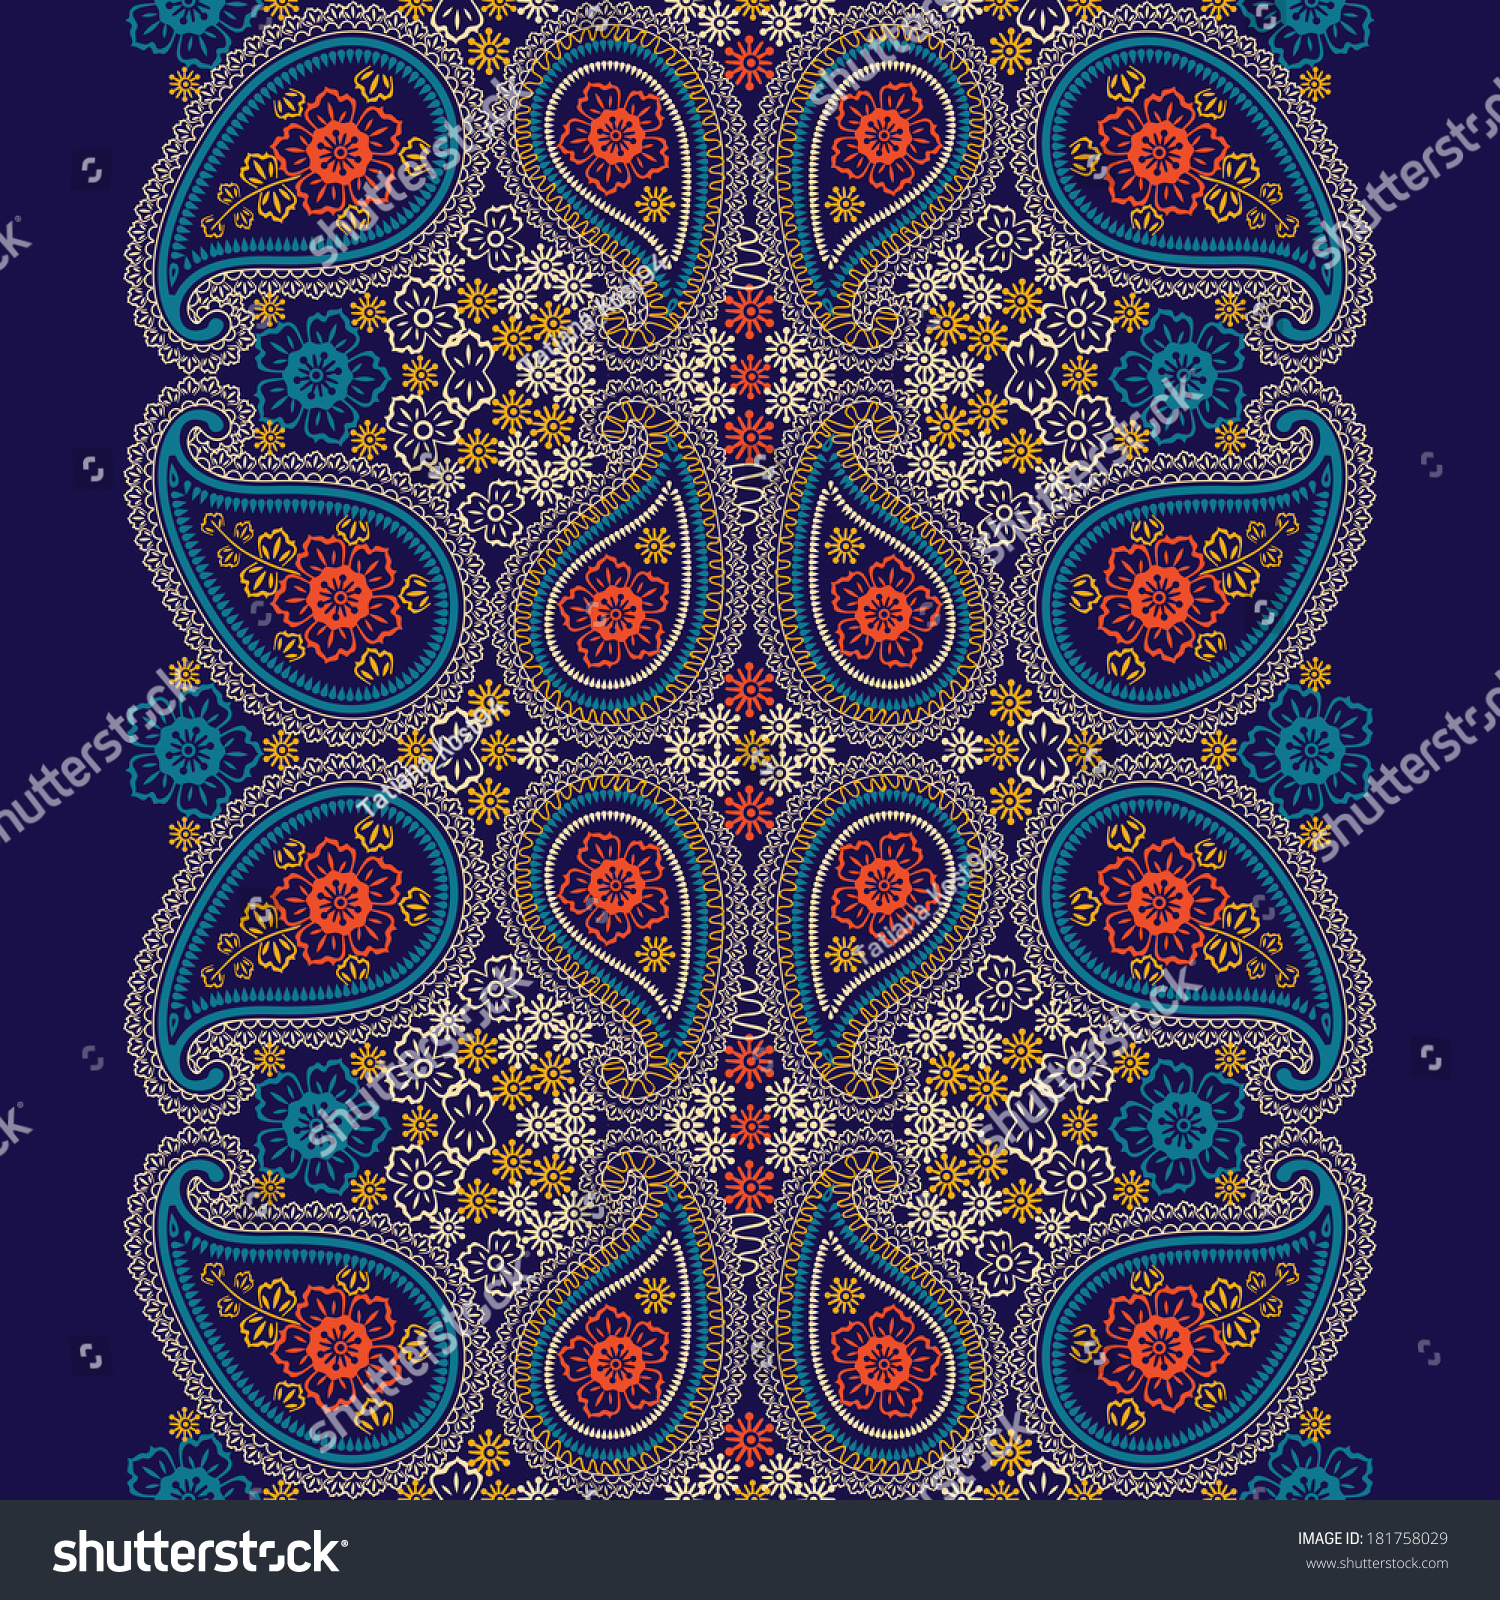 turkish cucumbers oriental motif lace seamless border ornament for fabrics wallpaper. Black Bedroom Furniture Sets. Home Design Ideas